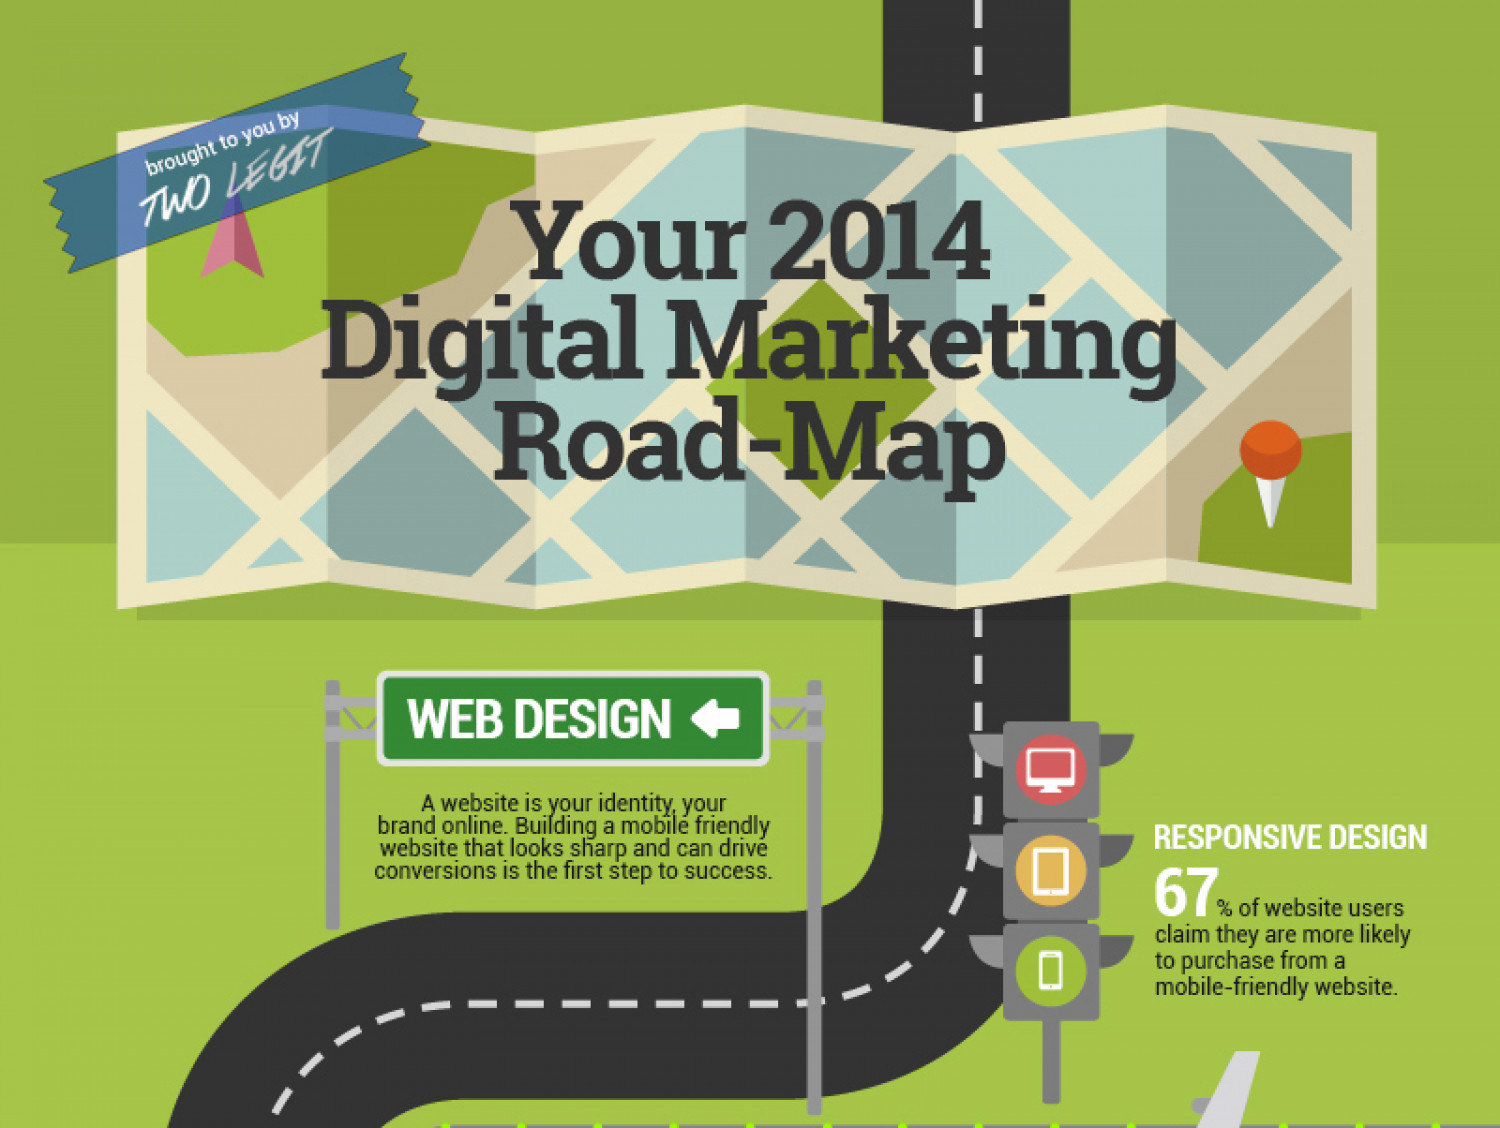 Your 2014 Digital Marketing Road-Map | Visual.ly Digital Road Maps on